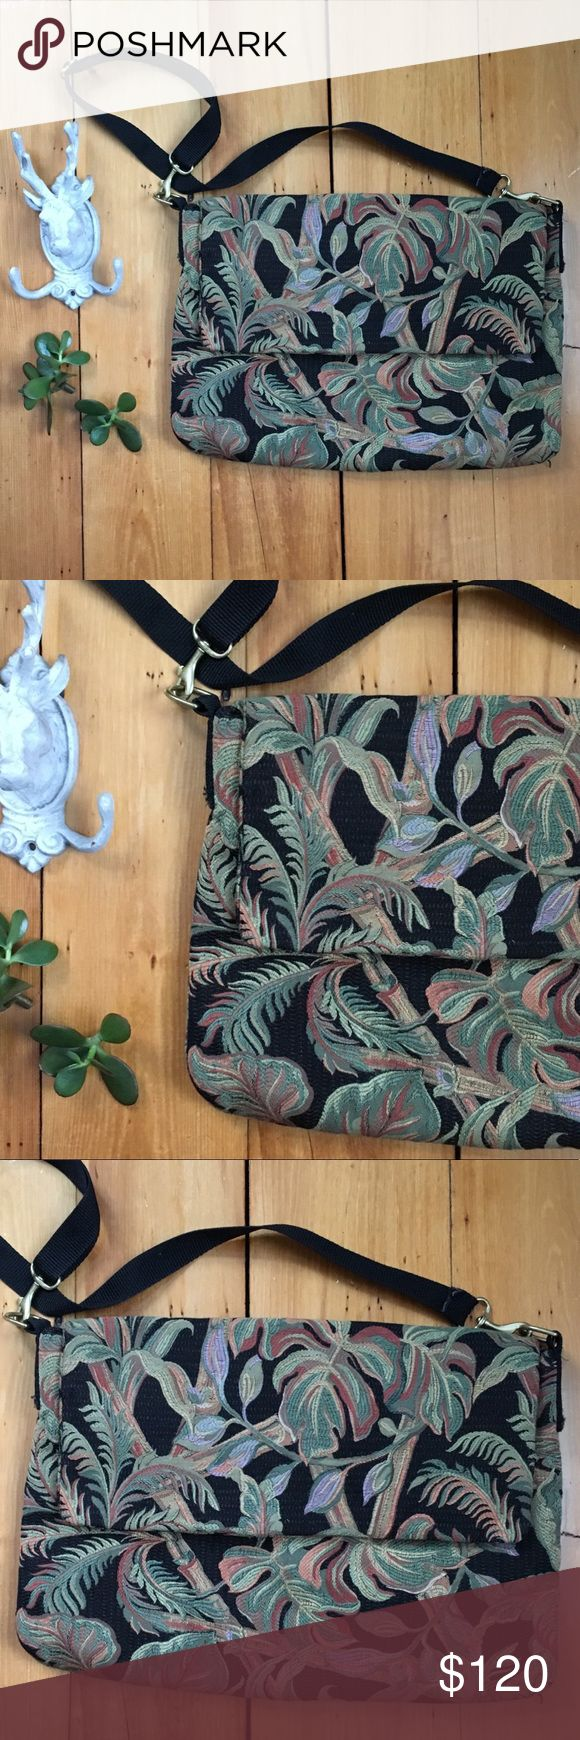 Vintage Floral Leaf Fabric Handmade Laptop Bag A beautiful handmade piece! Fully lined with a few interior pockets. Sturdy adjustable black fabric  strap with silver tone hardware. Black green and orange and purple tropical plant floral vintage fabric paired w a fun yellow brown vintage inside lining fabric. One small pen stain on inside. Outside has no issues to note. A funky way to carry your comp!  Measurements to come 😊 Vintage Bags Laptop Bags